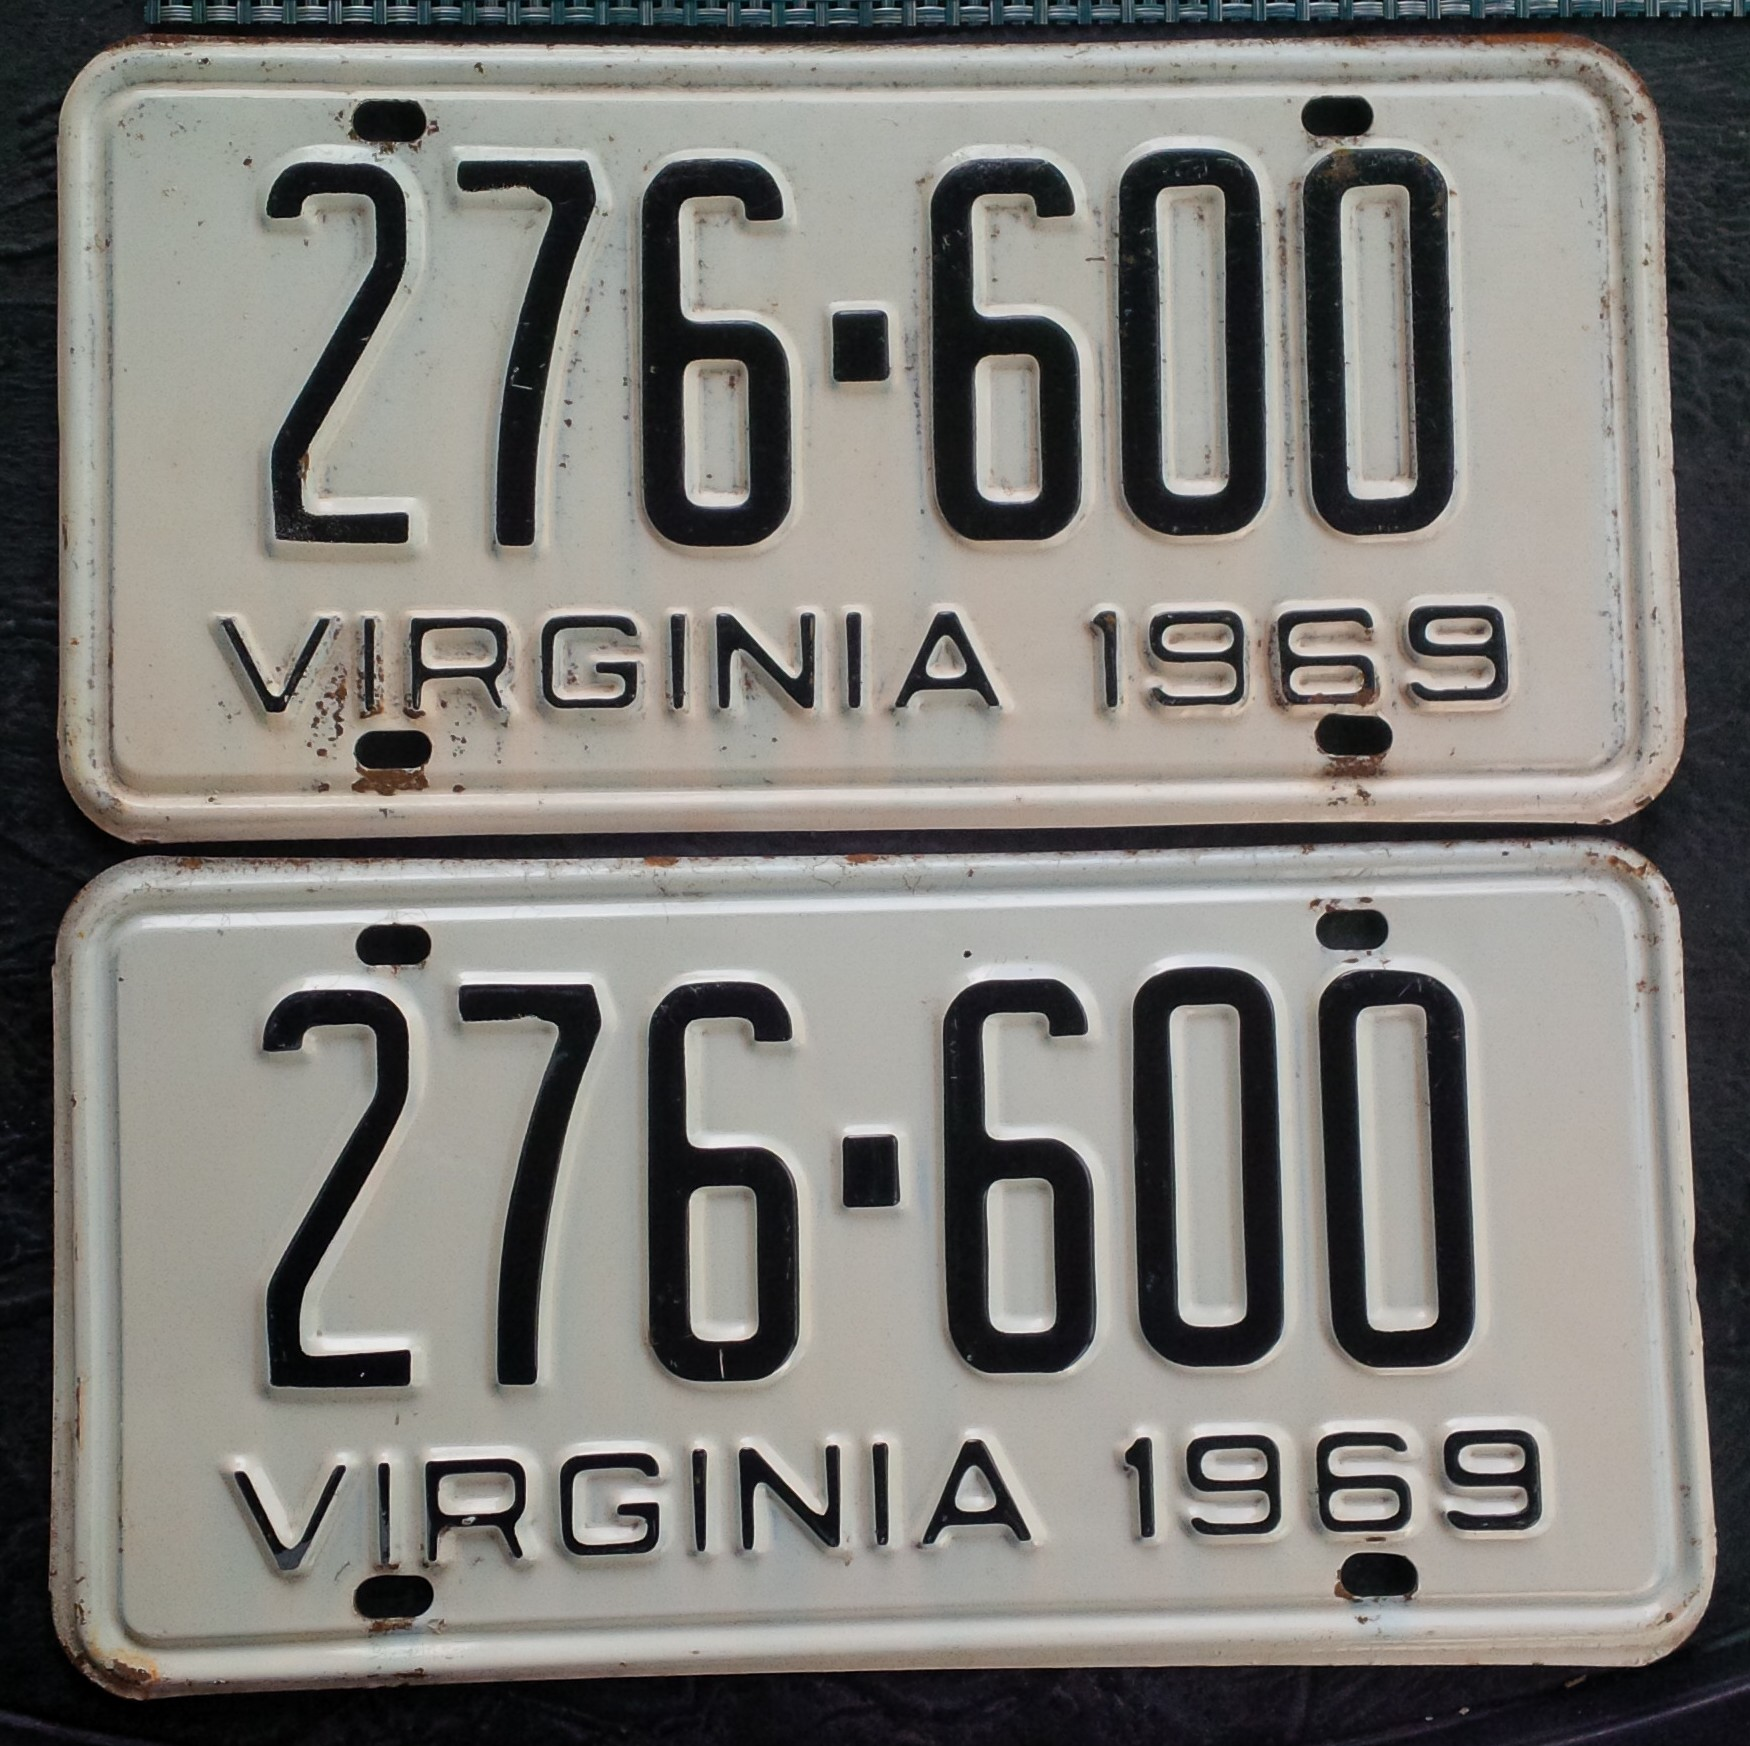 Andrew Pang - Year-of-Manufacture (YOM) License Plate Trade List